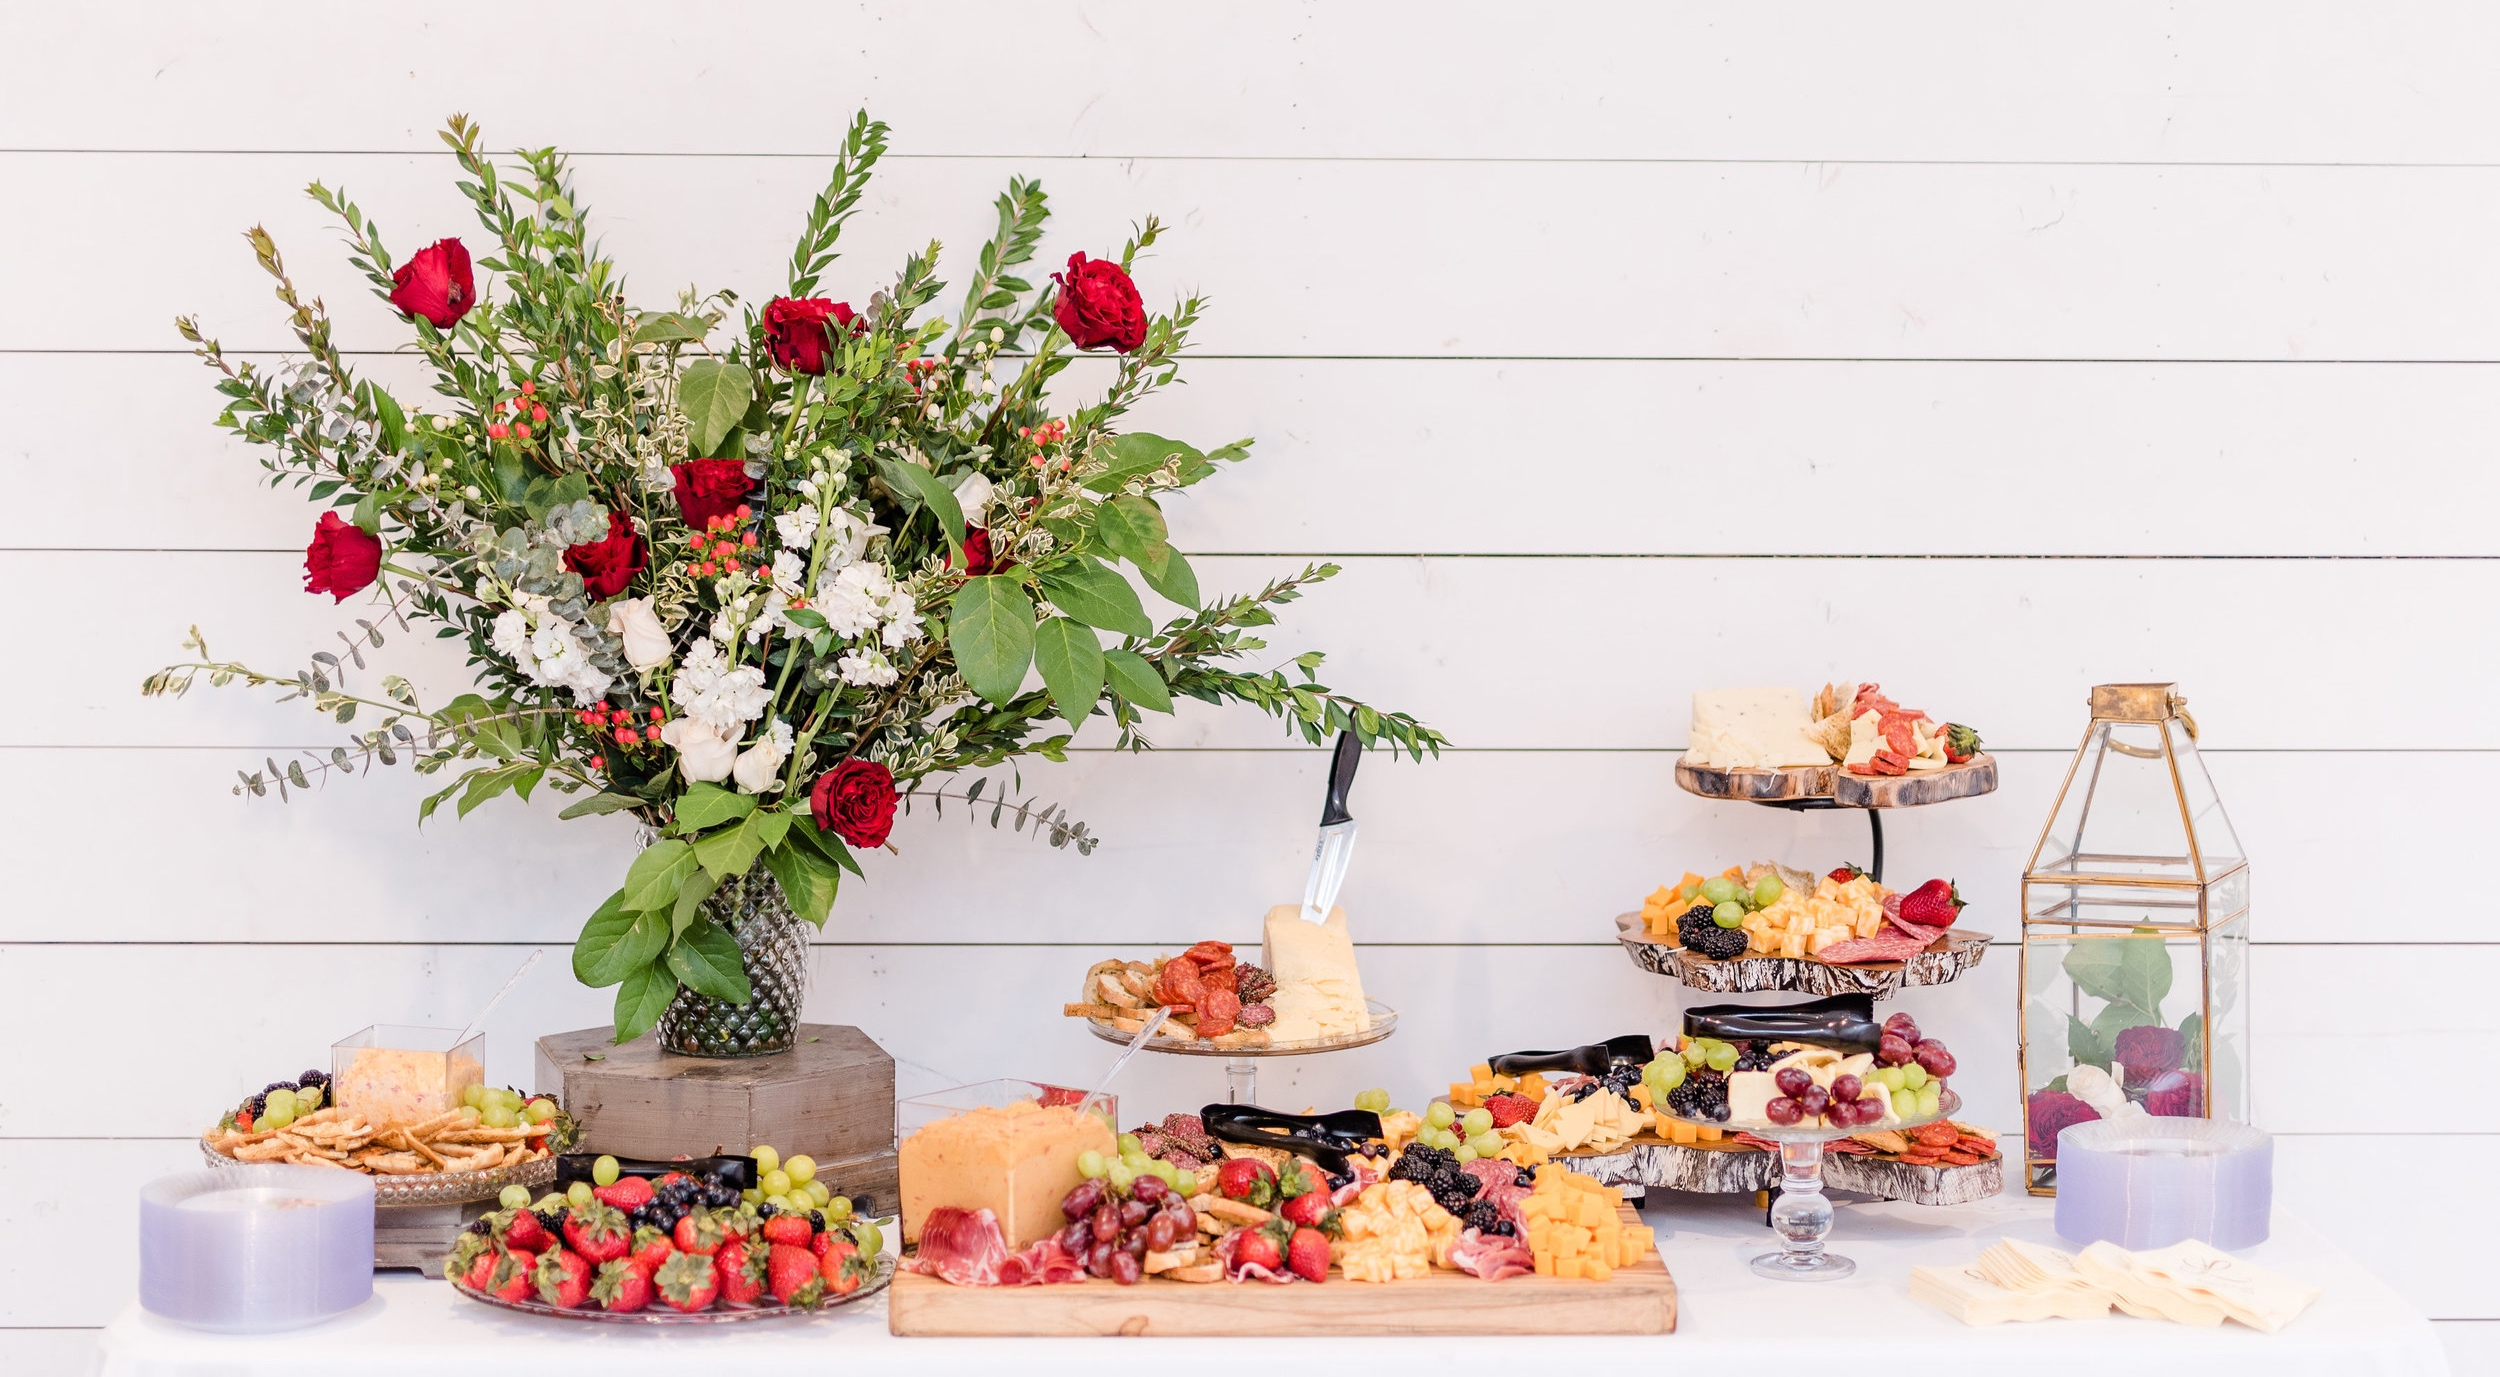 Appetizer Display at a Wedding Reception